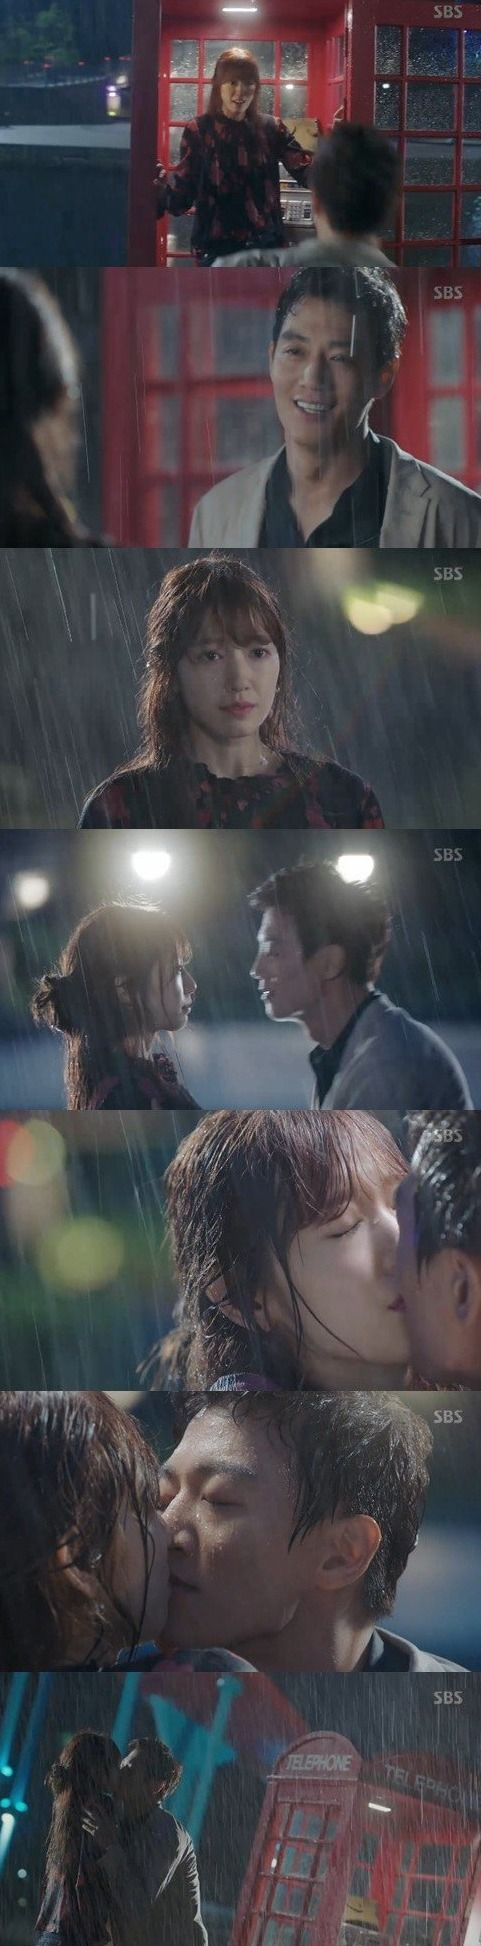 [Spoiler] Added episode 6 captures for the #kdrama 'Doctors'